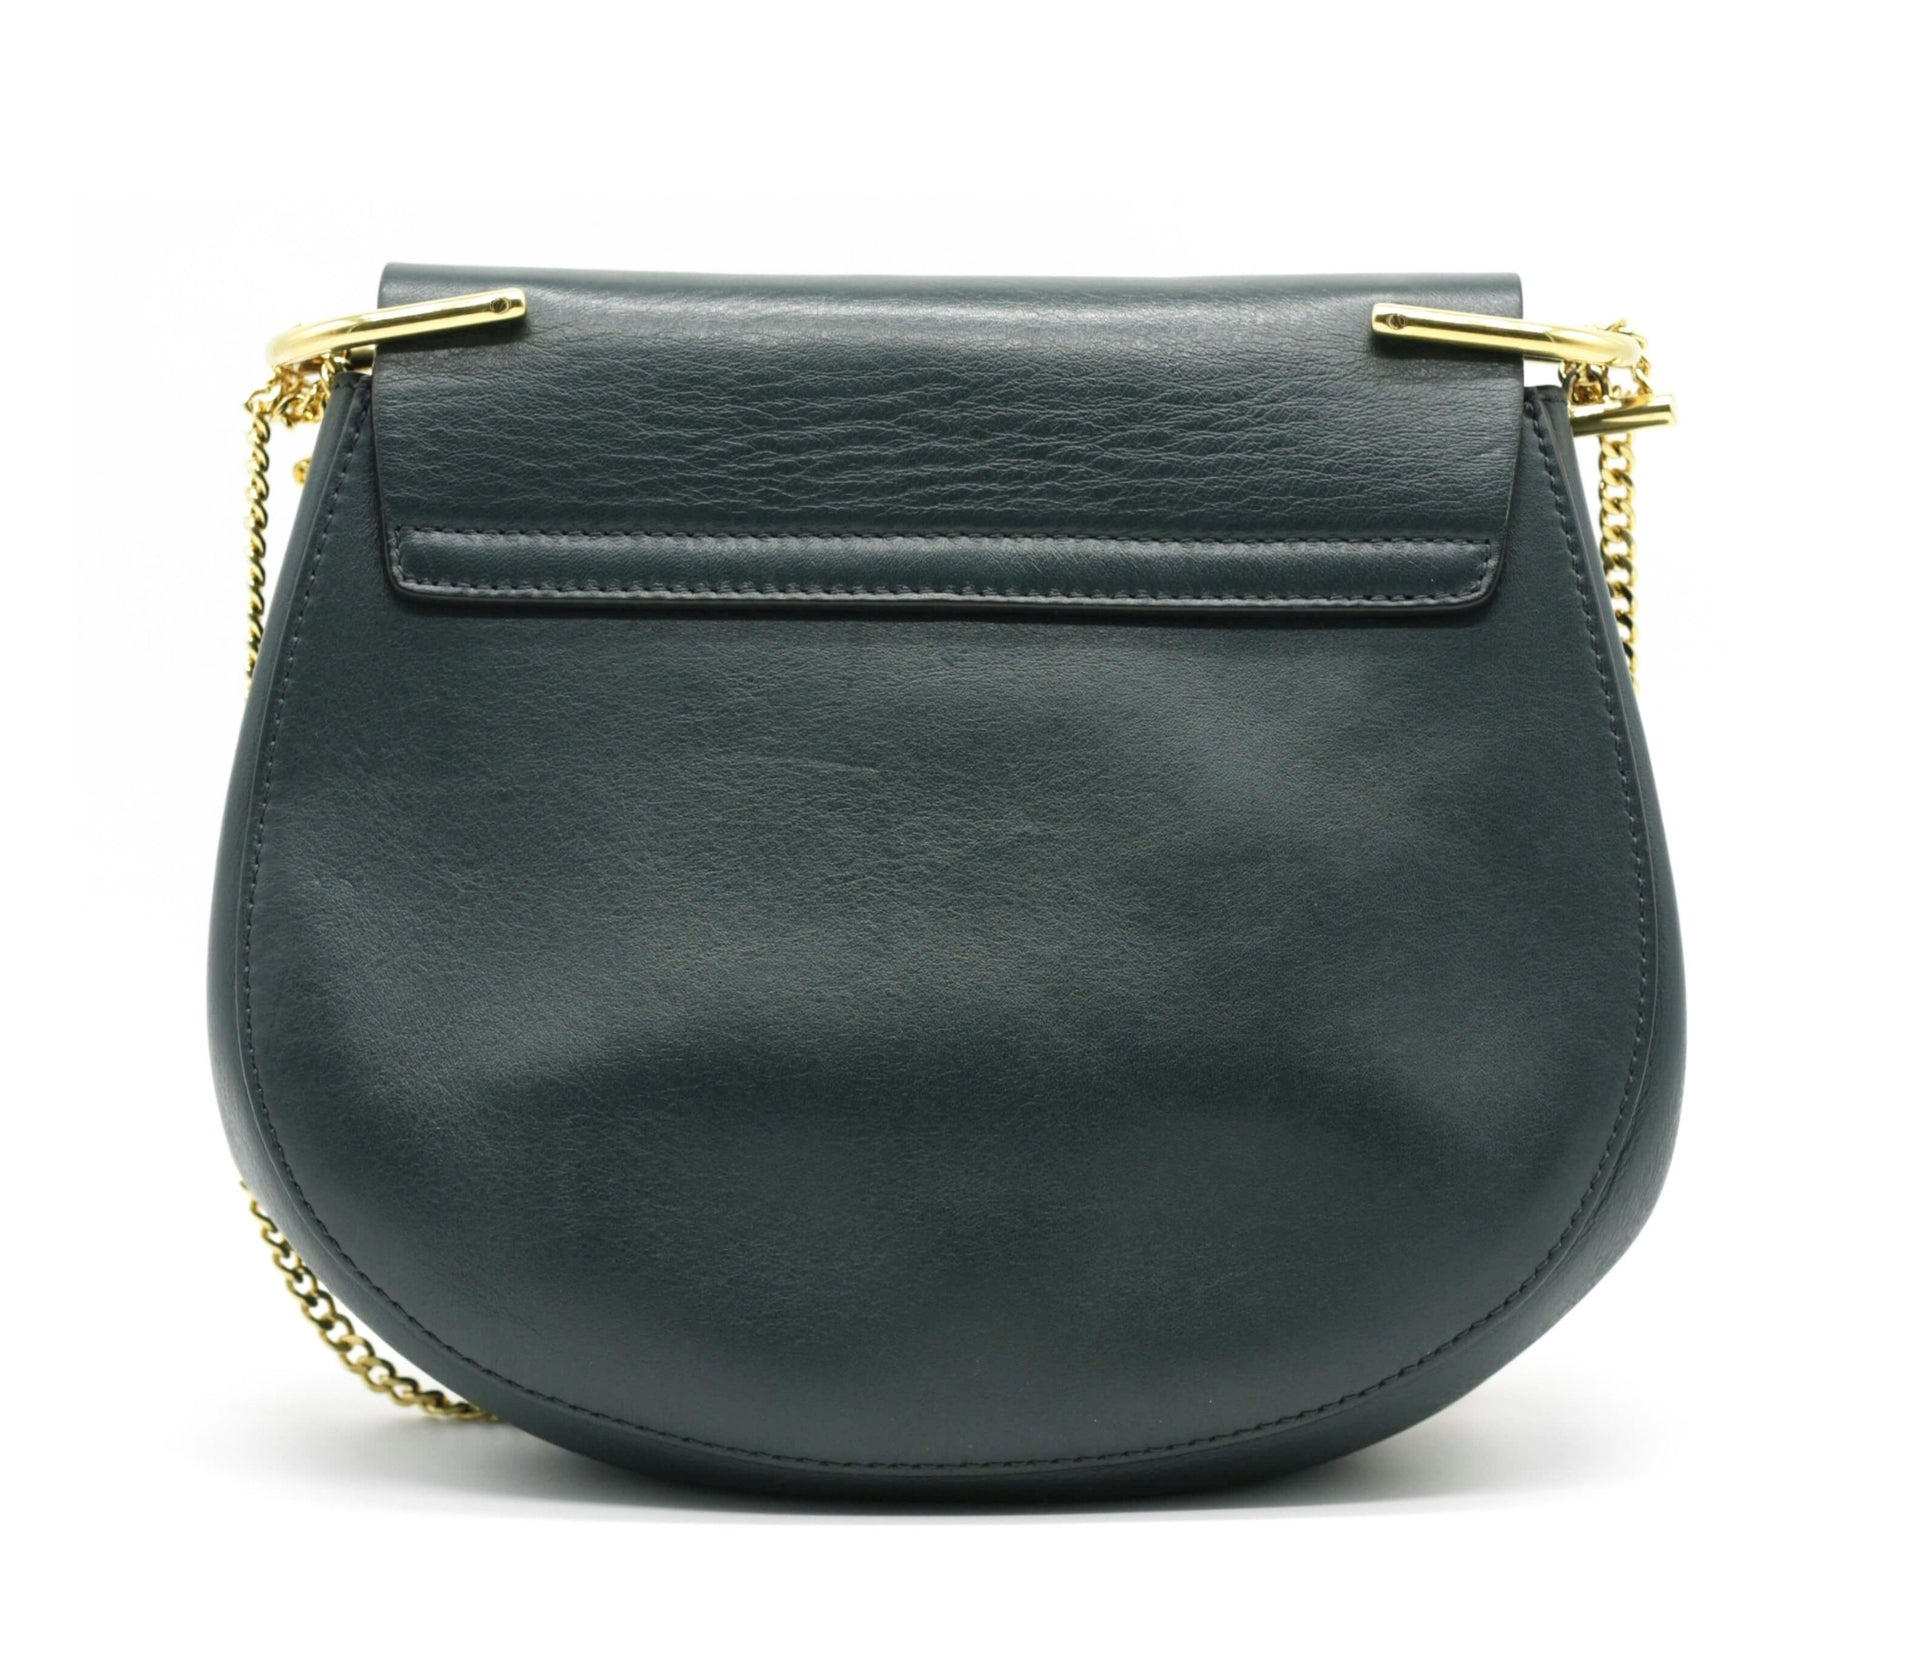 Intense Green Drew saddle bag in pony and calfskin